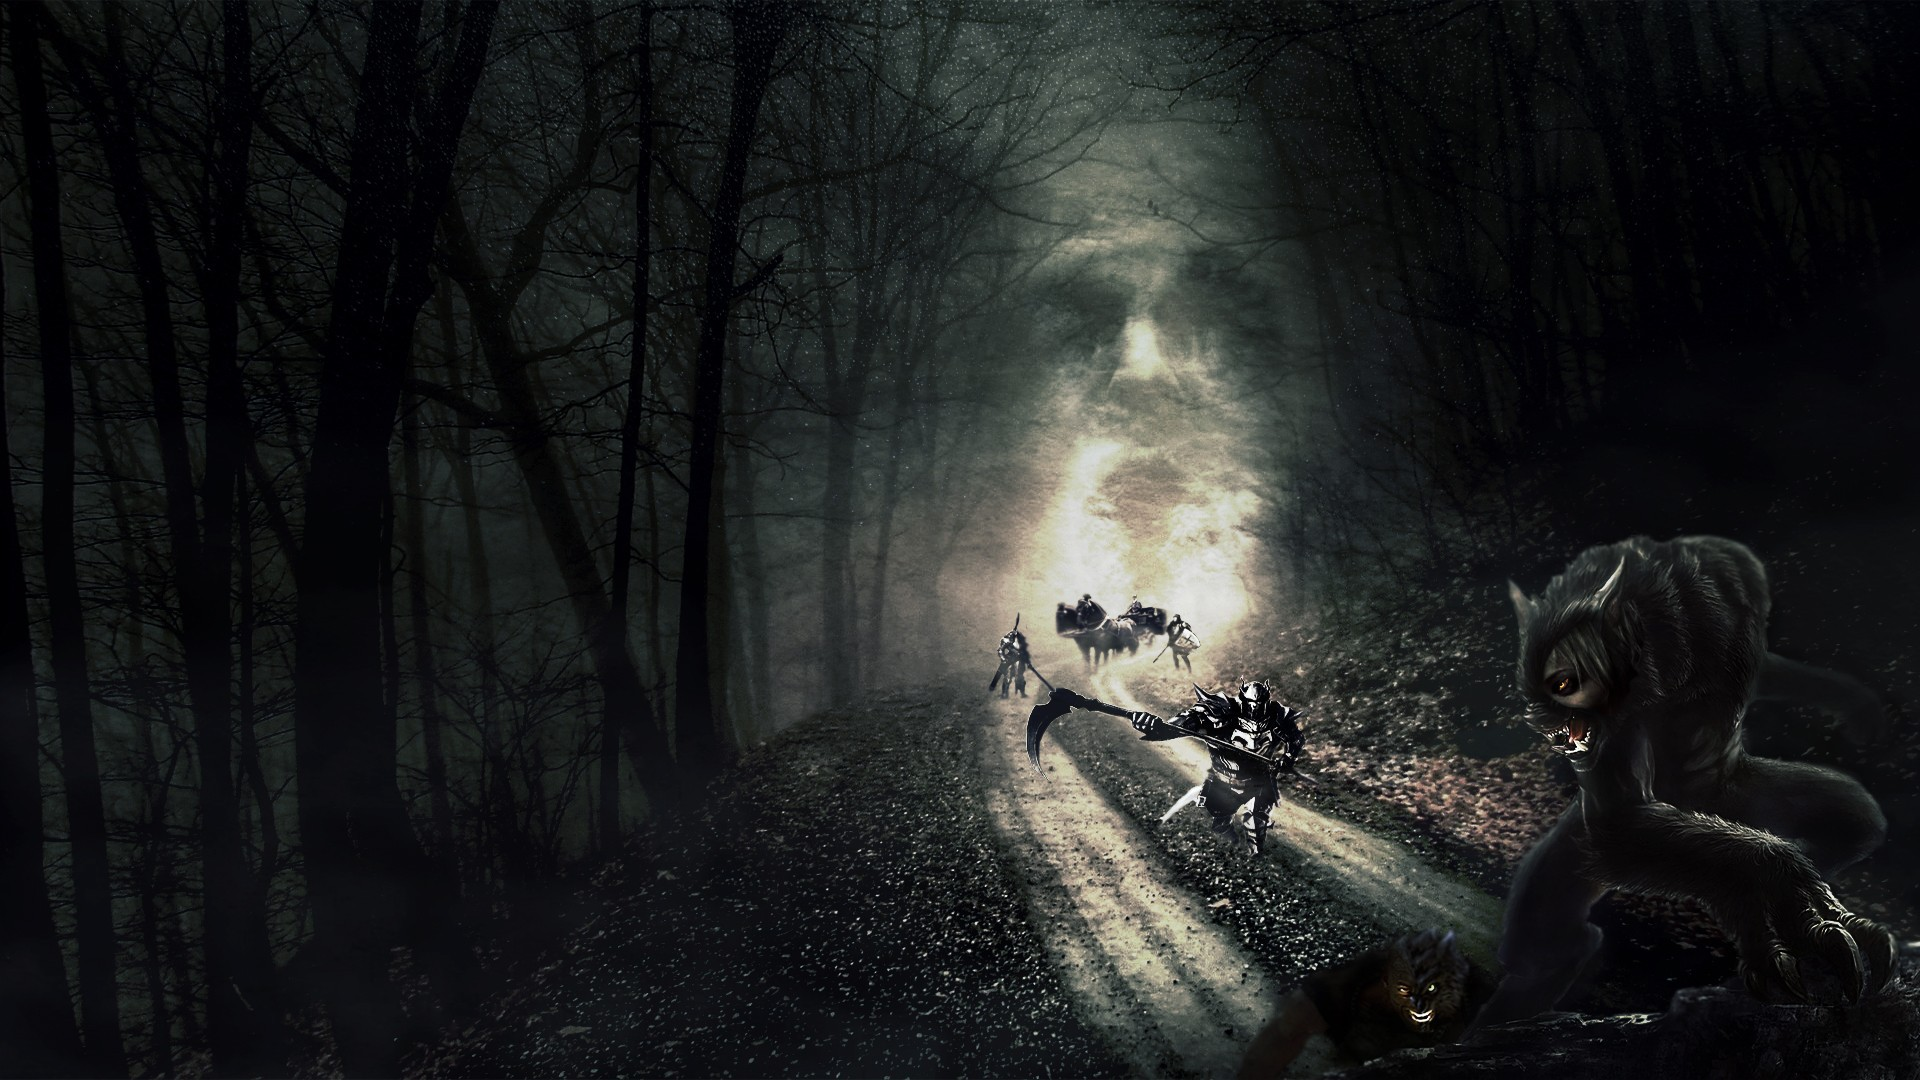 Amusing Images Wallpapers Forest Wallpaper Tumblr Forest Wallpaper Iphone Road Deaths Forest Wallpapers Images Photos Road Deaths Forest Wallpapers houzz 01 Dark Forest Wallpaper